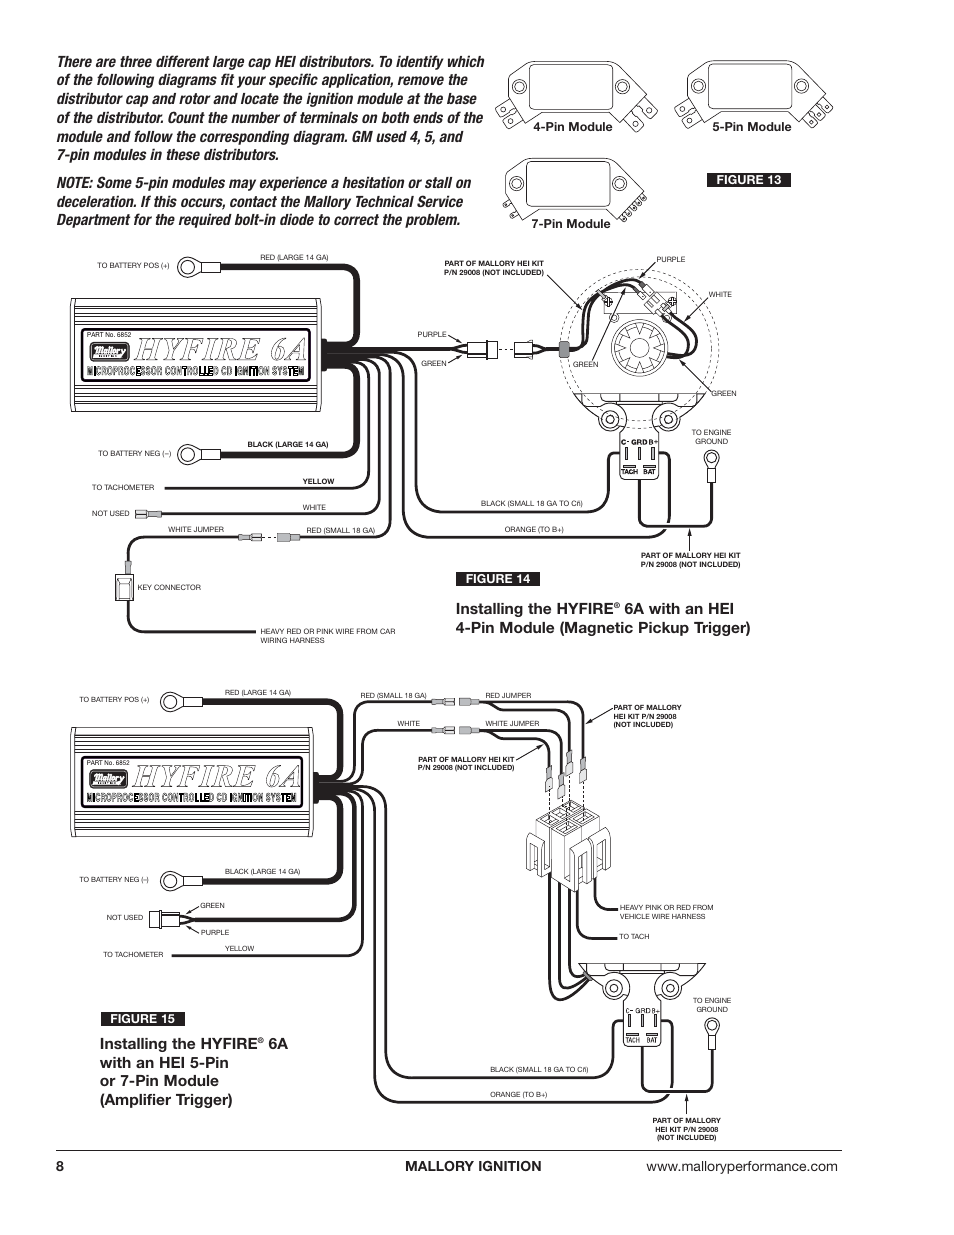 mallory ignition mallory hyfire 6a and 6al series electronic ignition controls 6852m_6853m page8?resize=665%2C861 mallory ivc wiring diagram conventional fire alarm wiring diagram  at alyssarenee.co